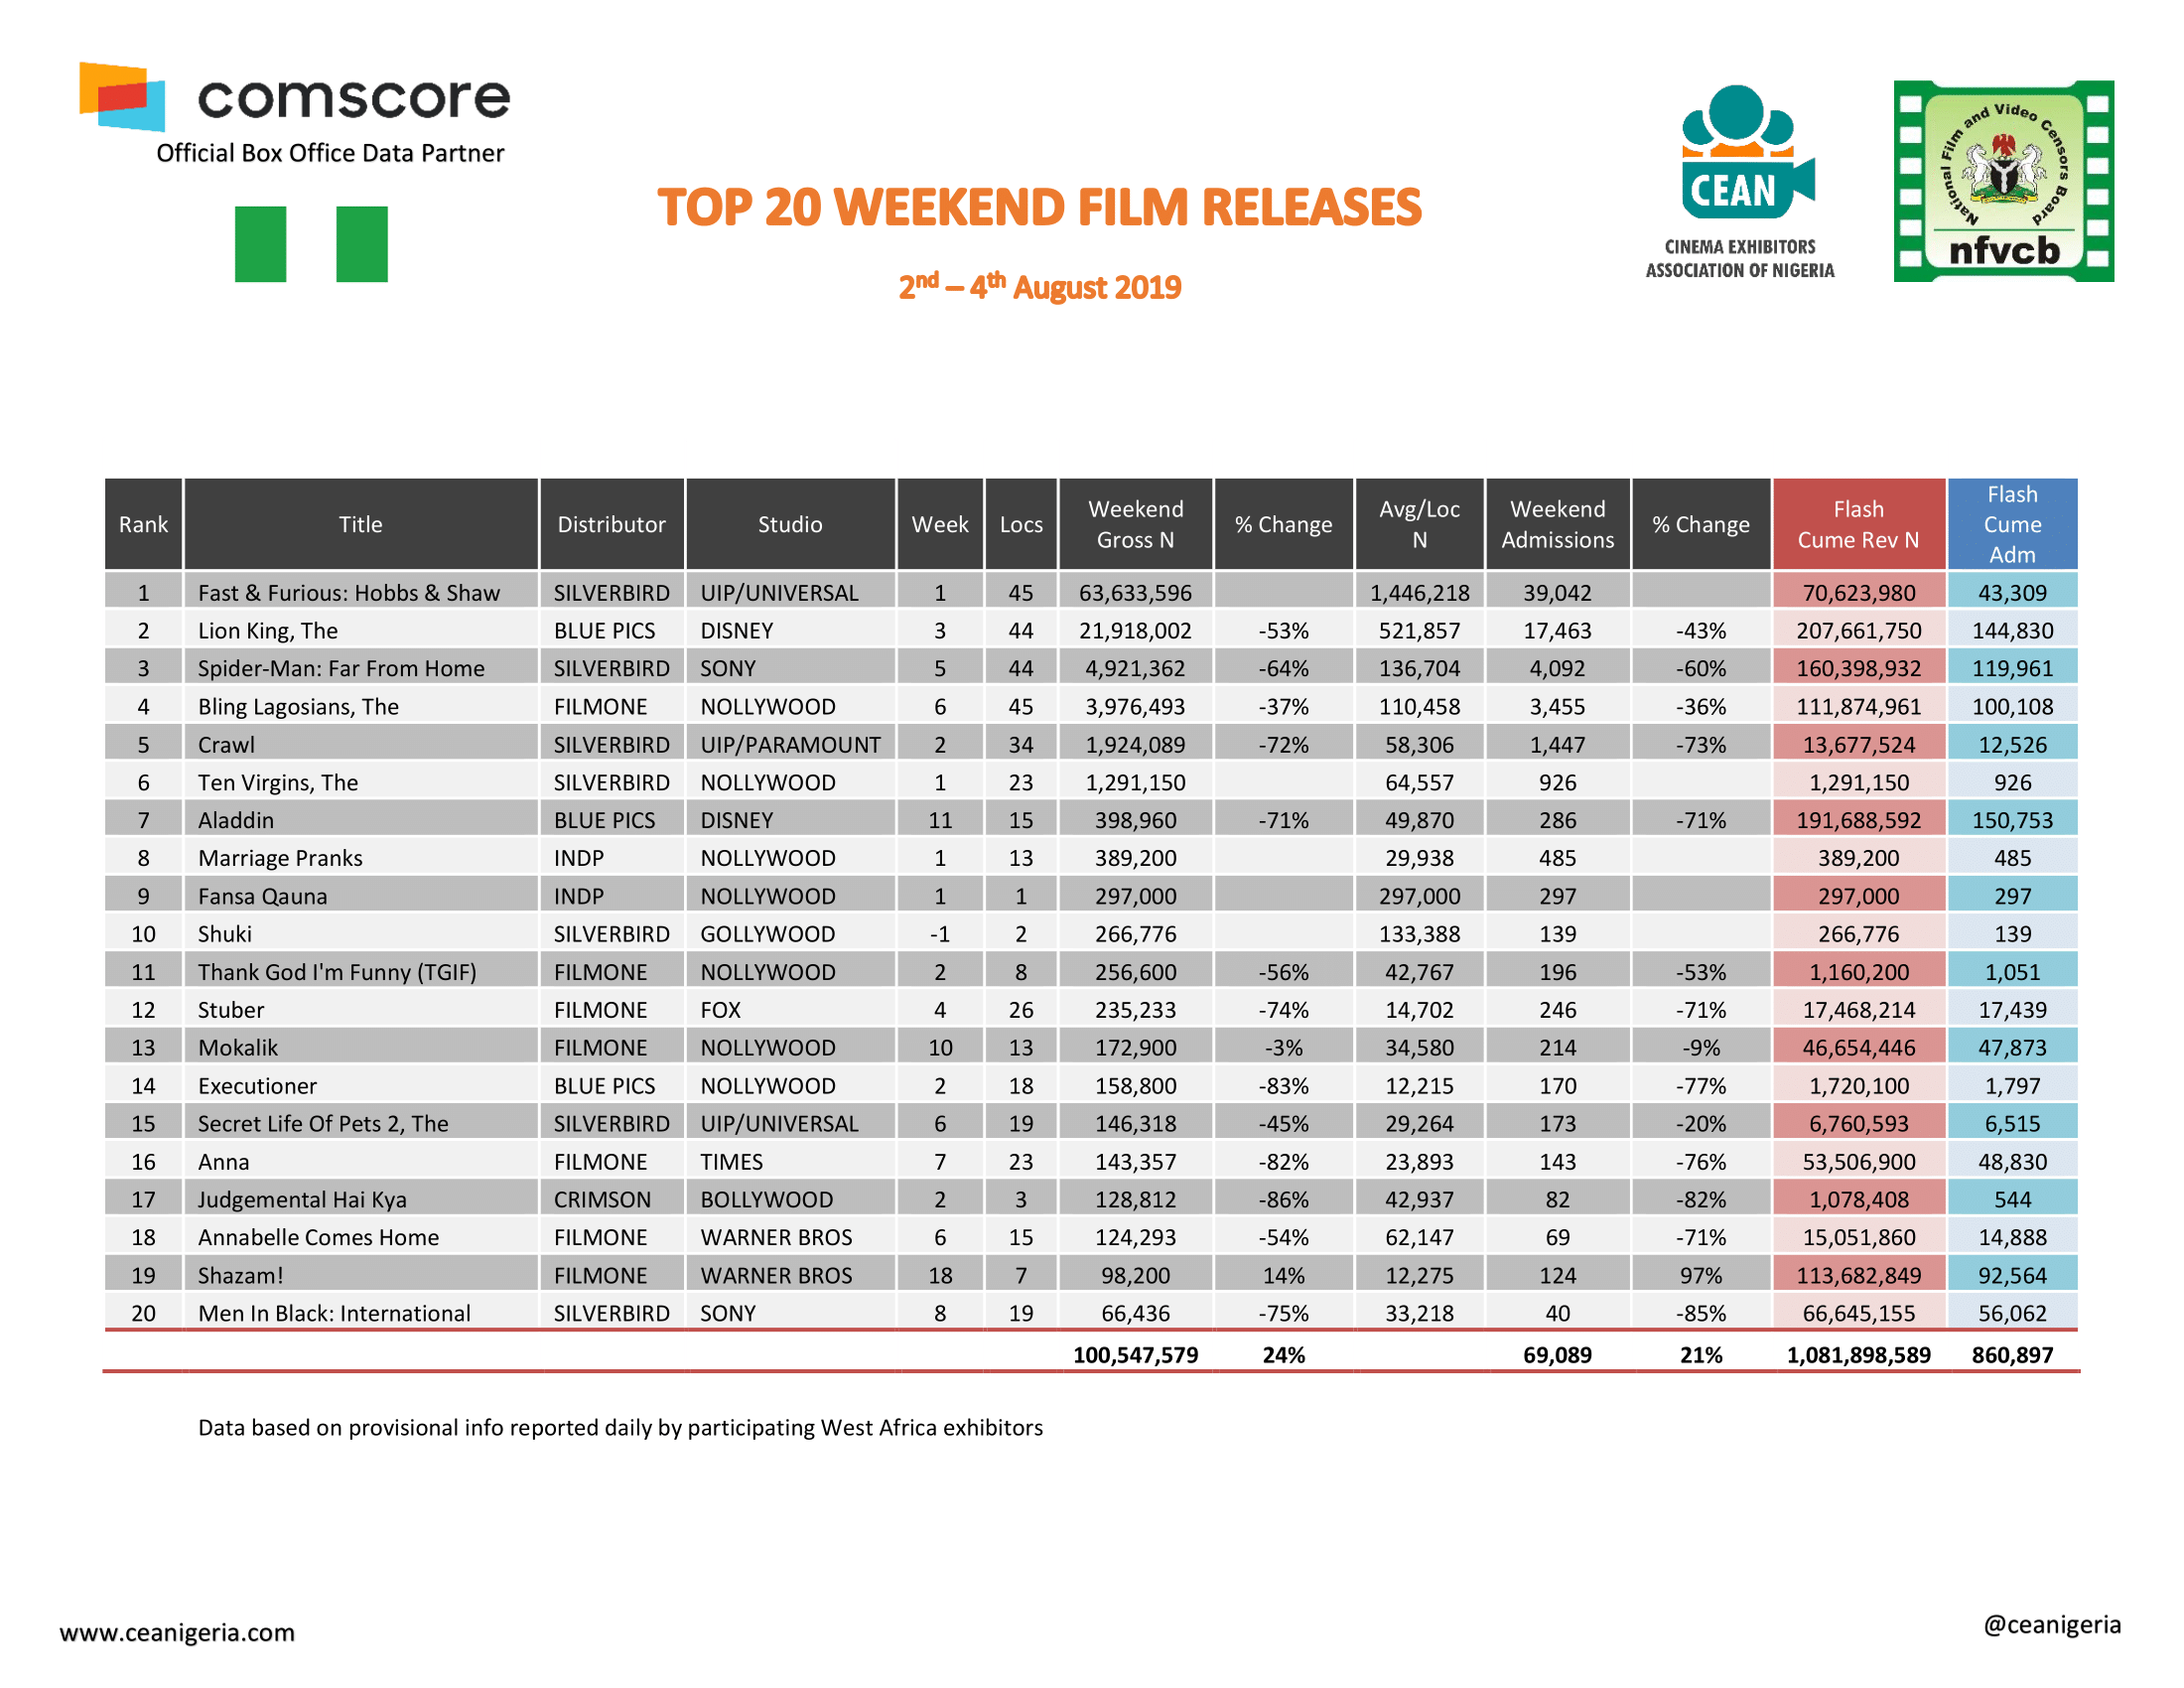 Top 20 Films 2nd 4th August 2019 1